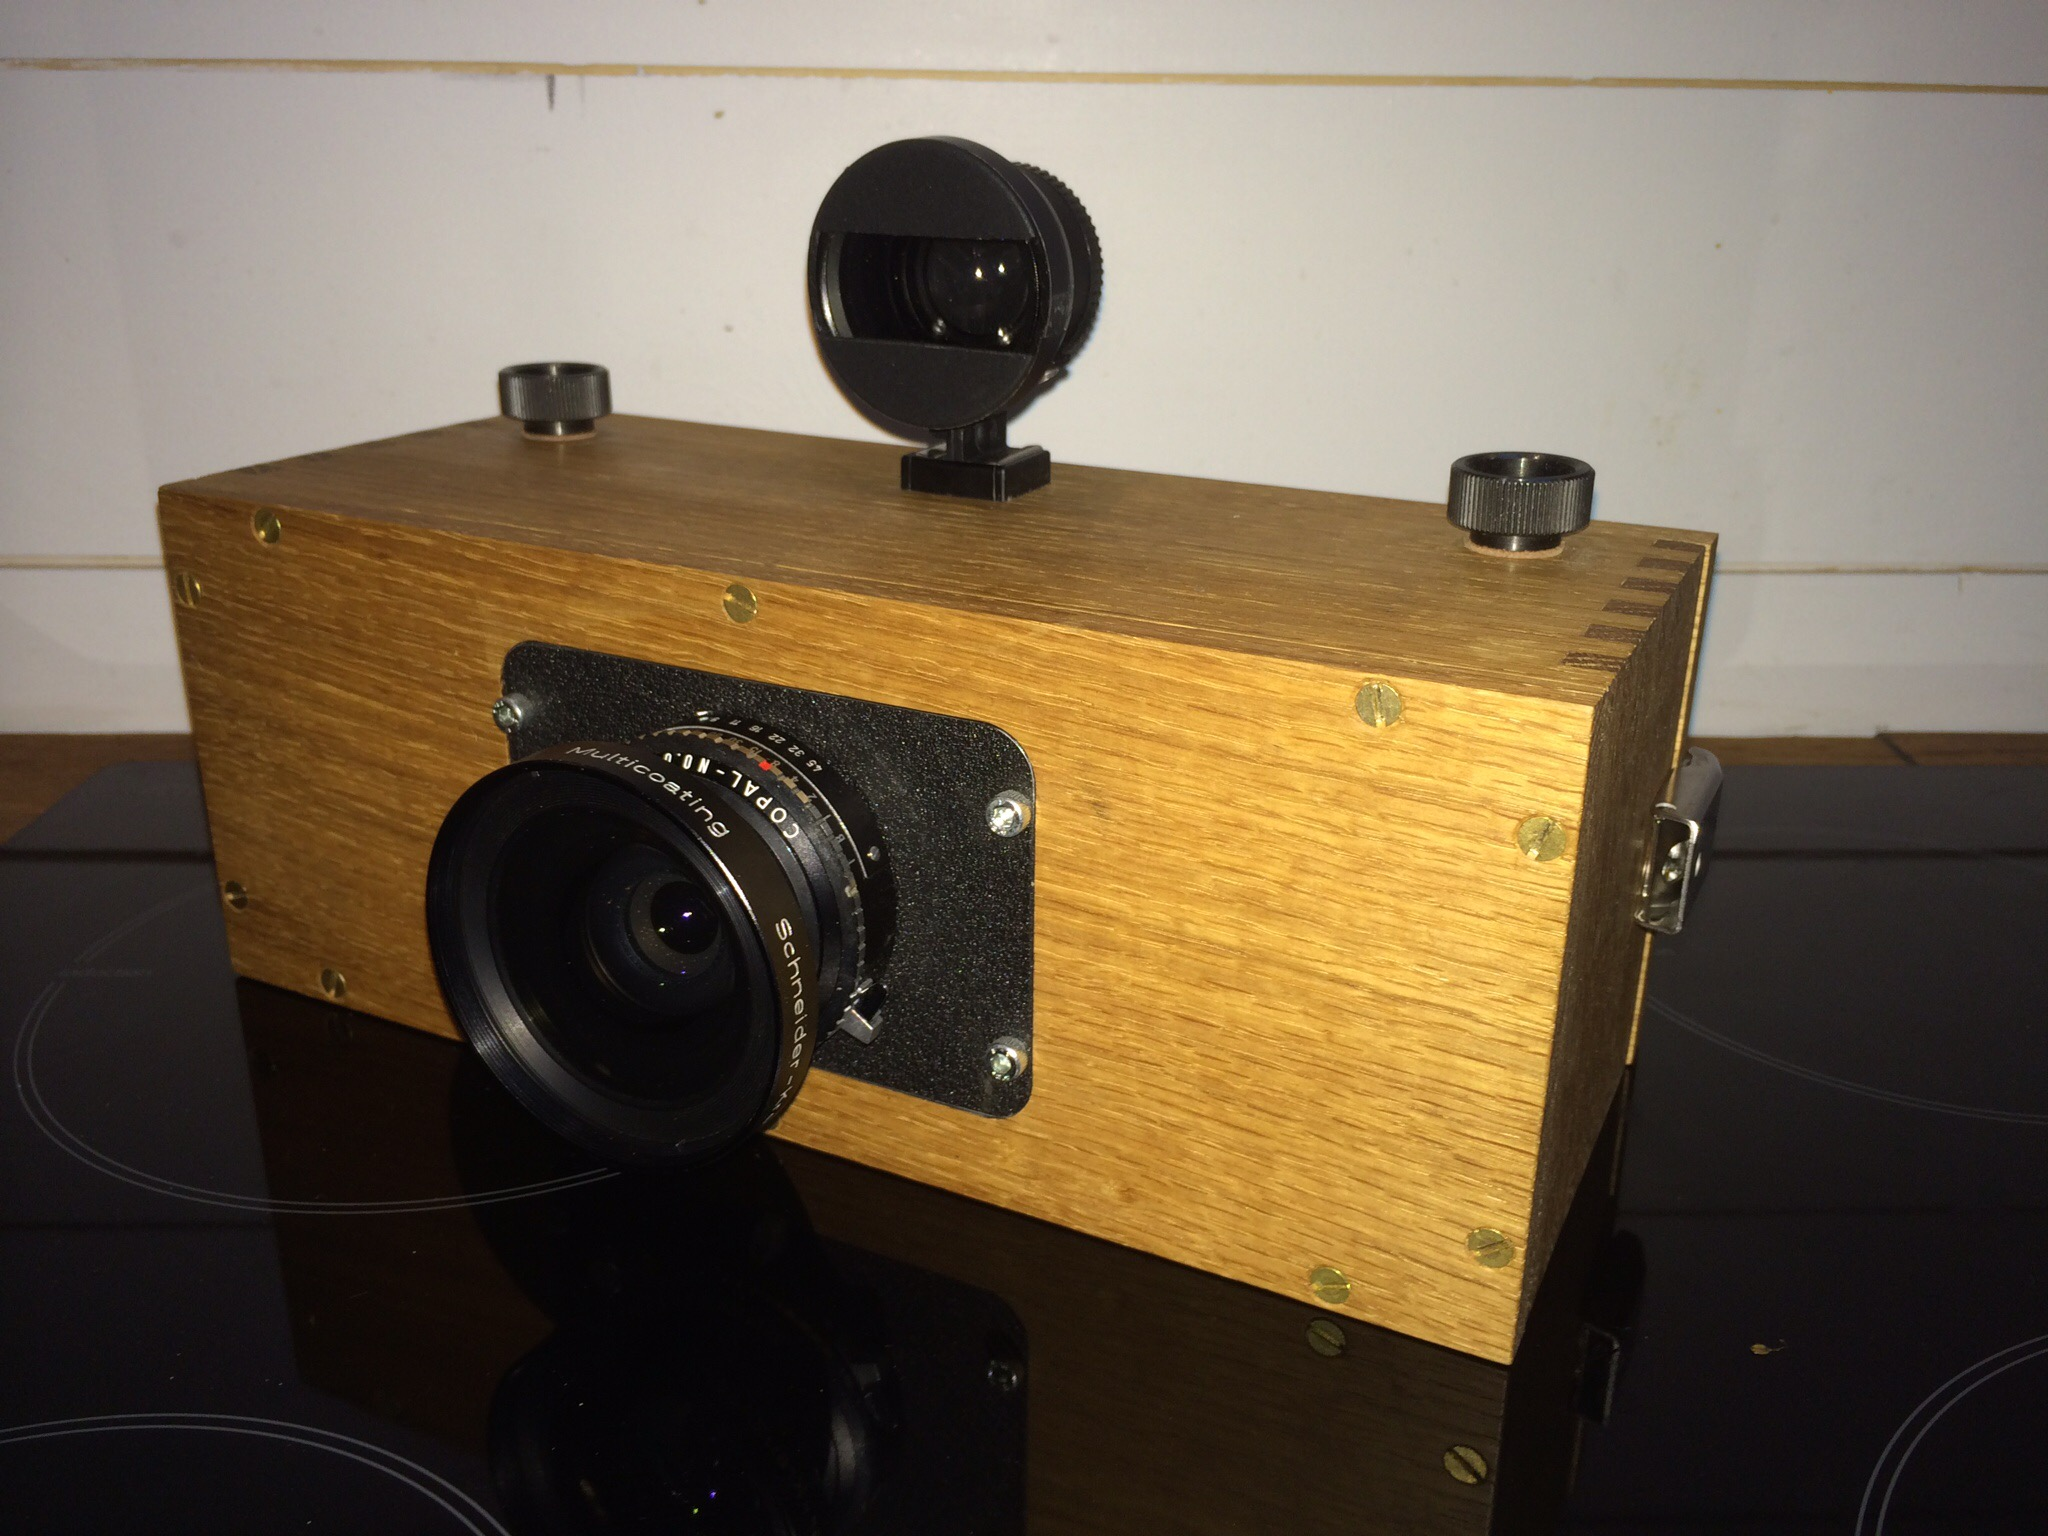 Panoramic film camera. Design and build by GFW.